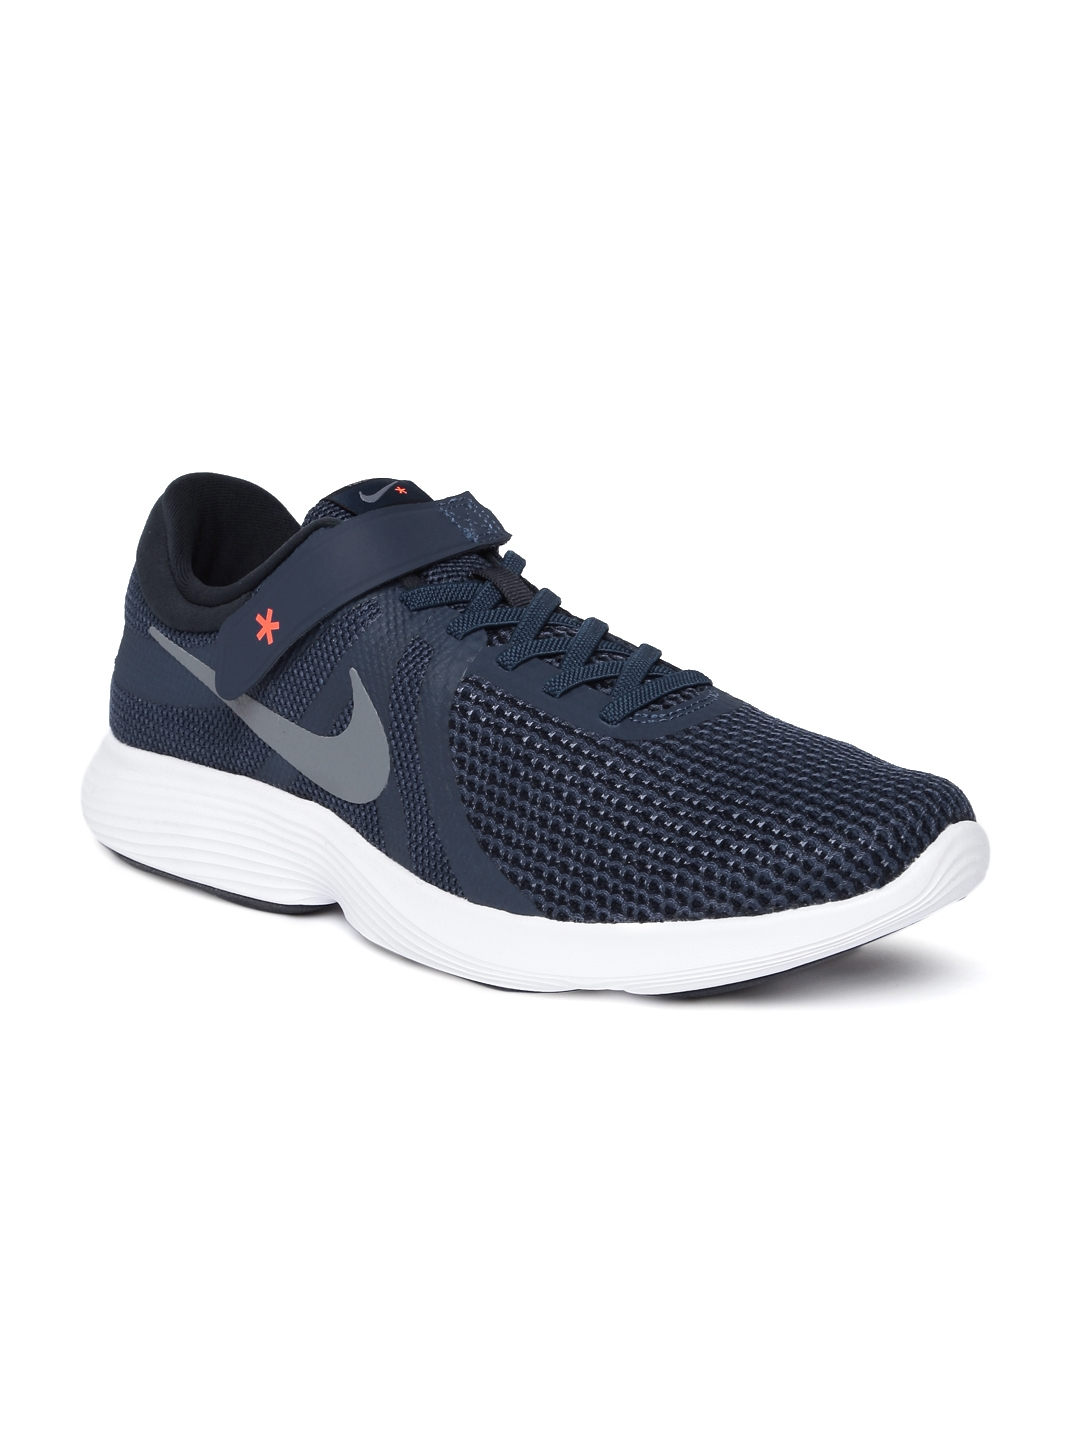 check out 6286e e8bab Nike Men Navy Blue Solid REVOLUTION 4 FLYEASE Running Shoes